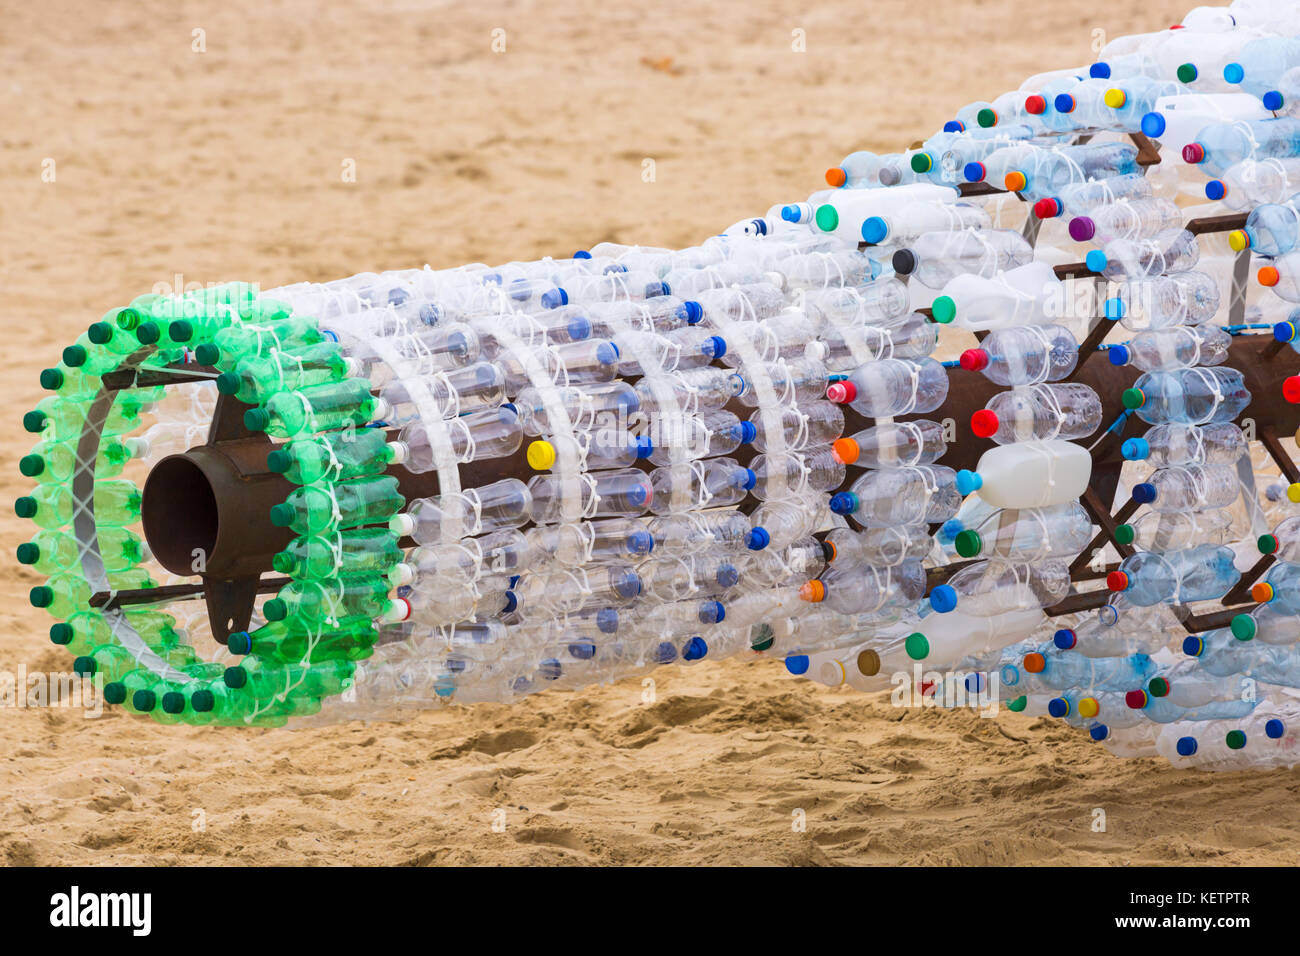 upcycling plastic bottles stock photos upcycling plastic bottles